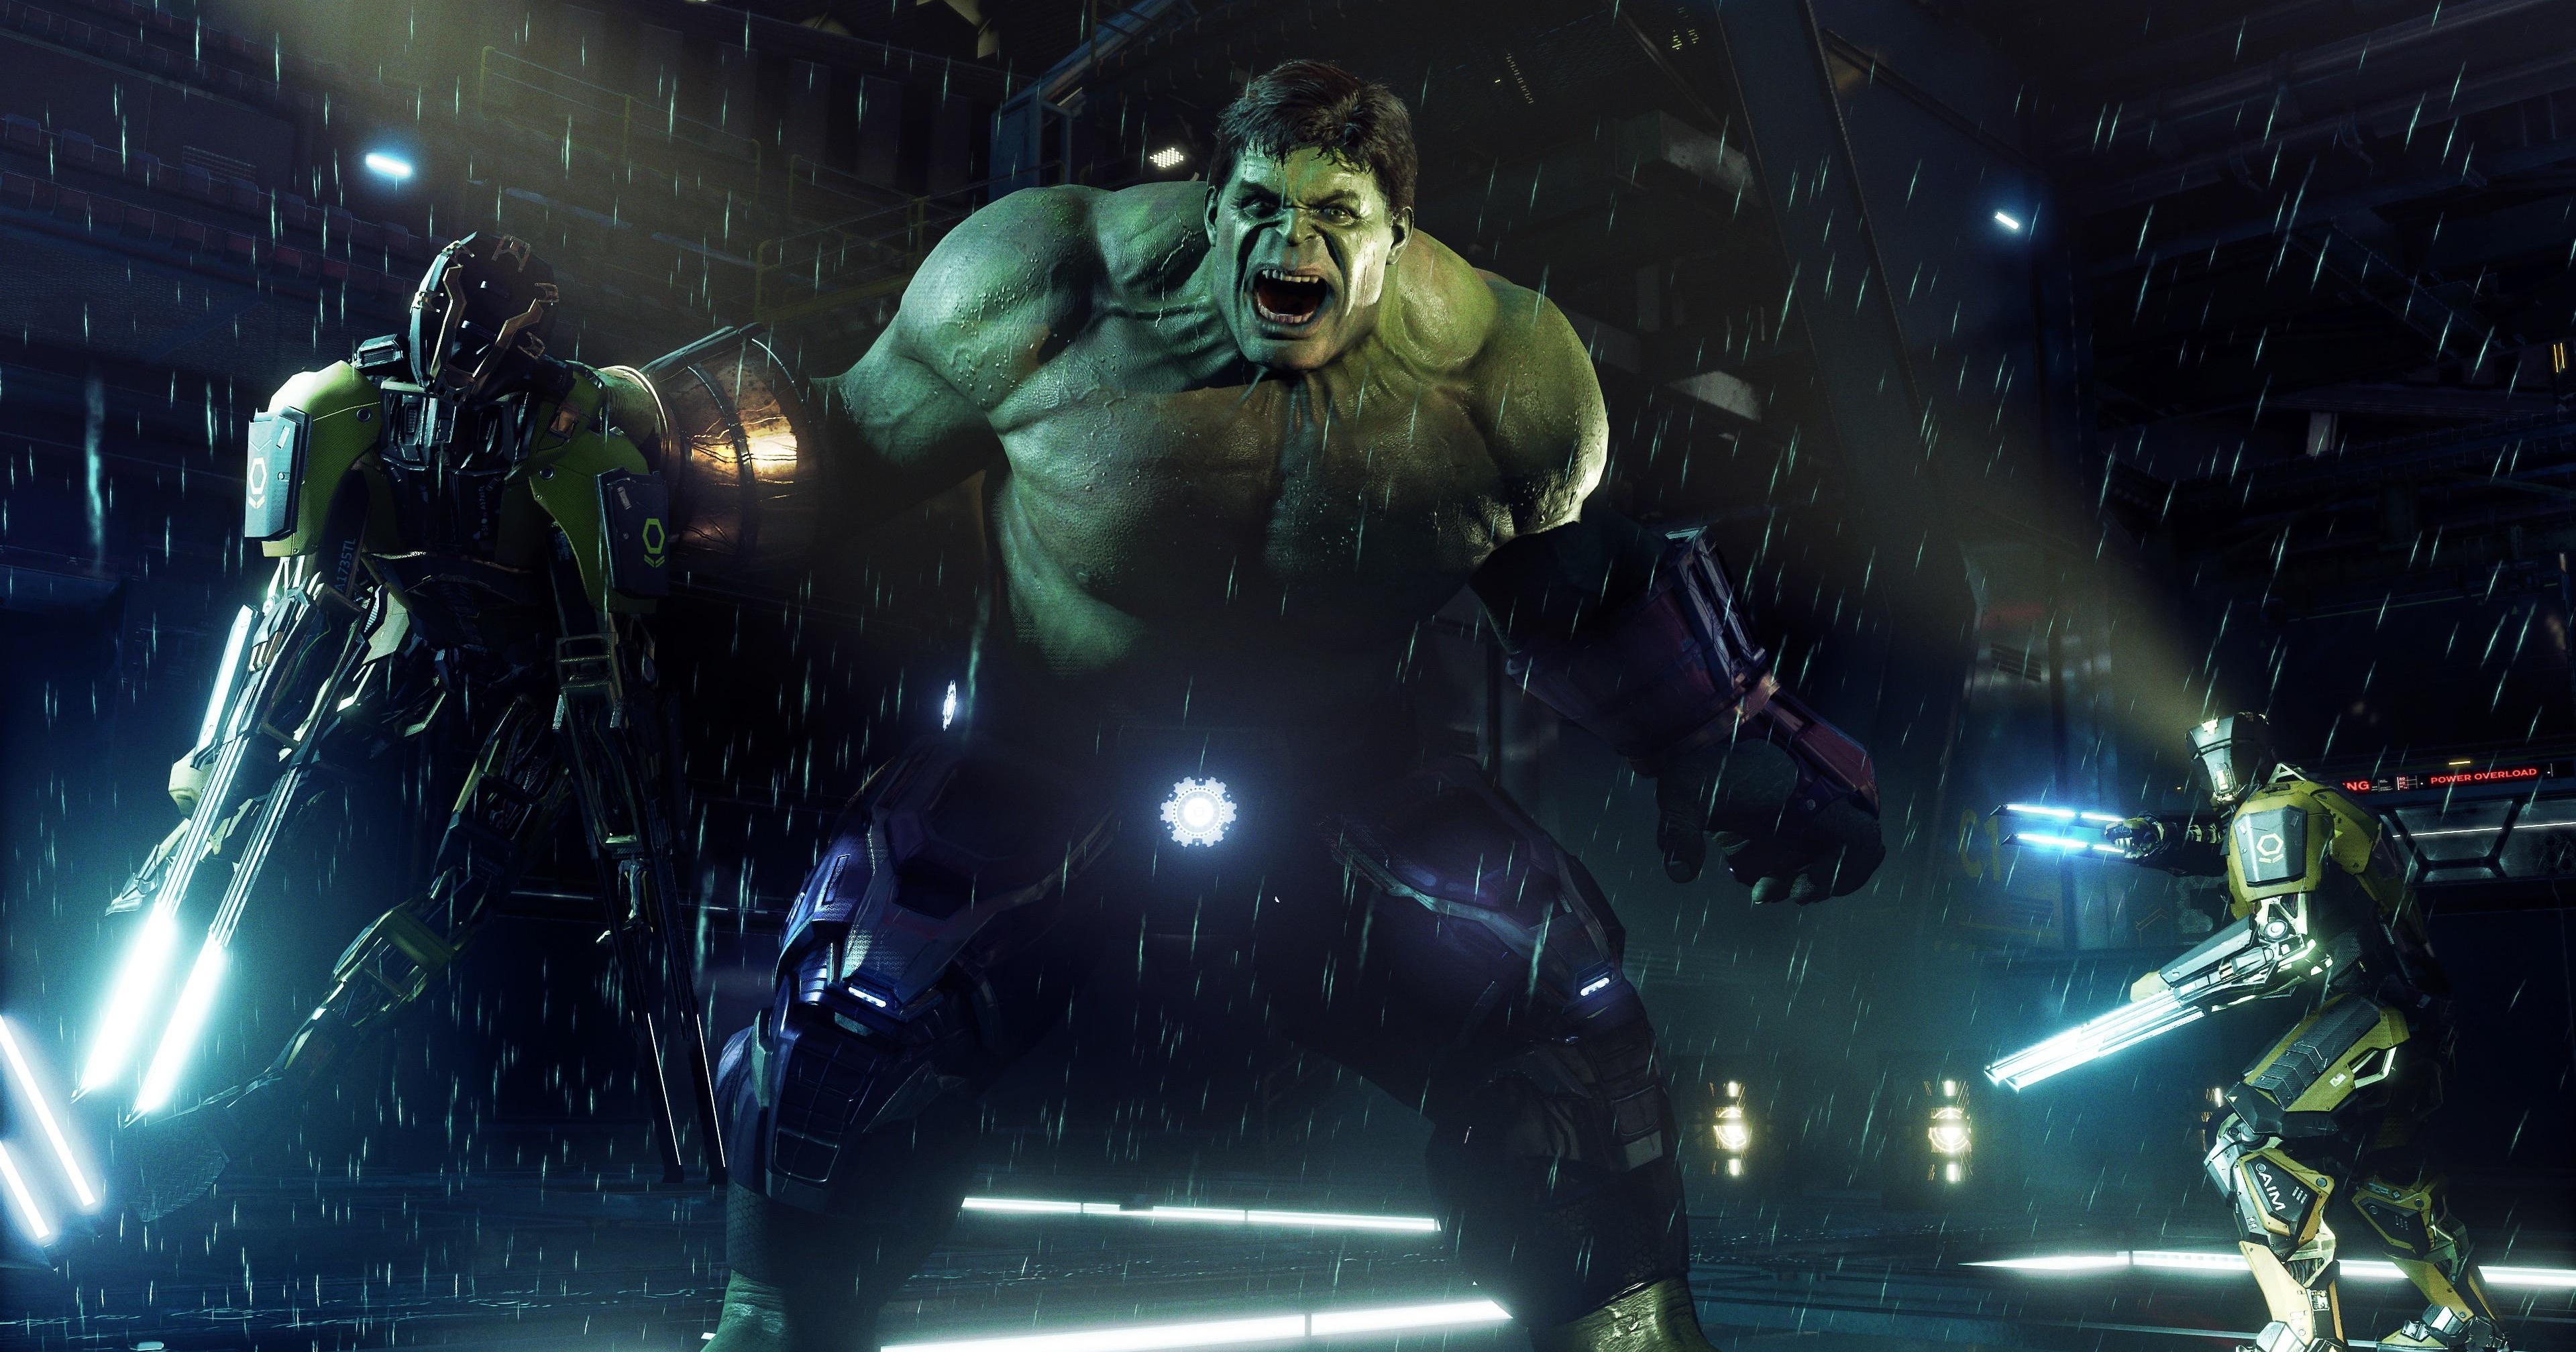 marvel-avengers-screencap-5.jpg